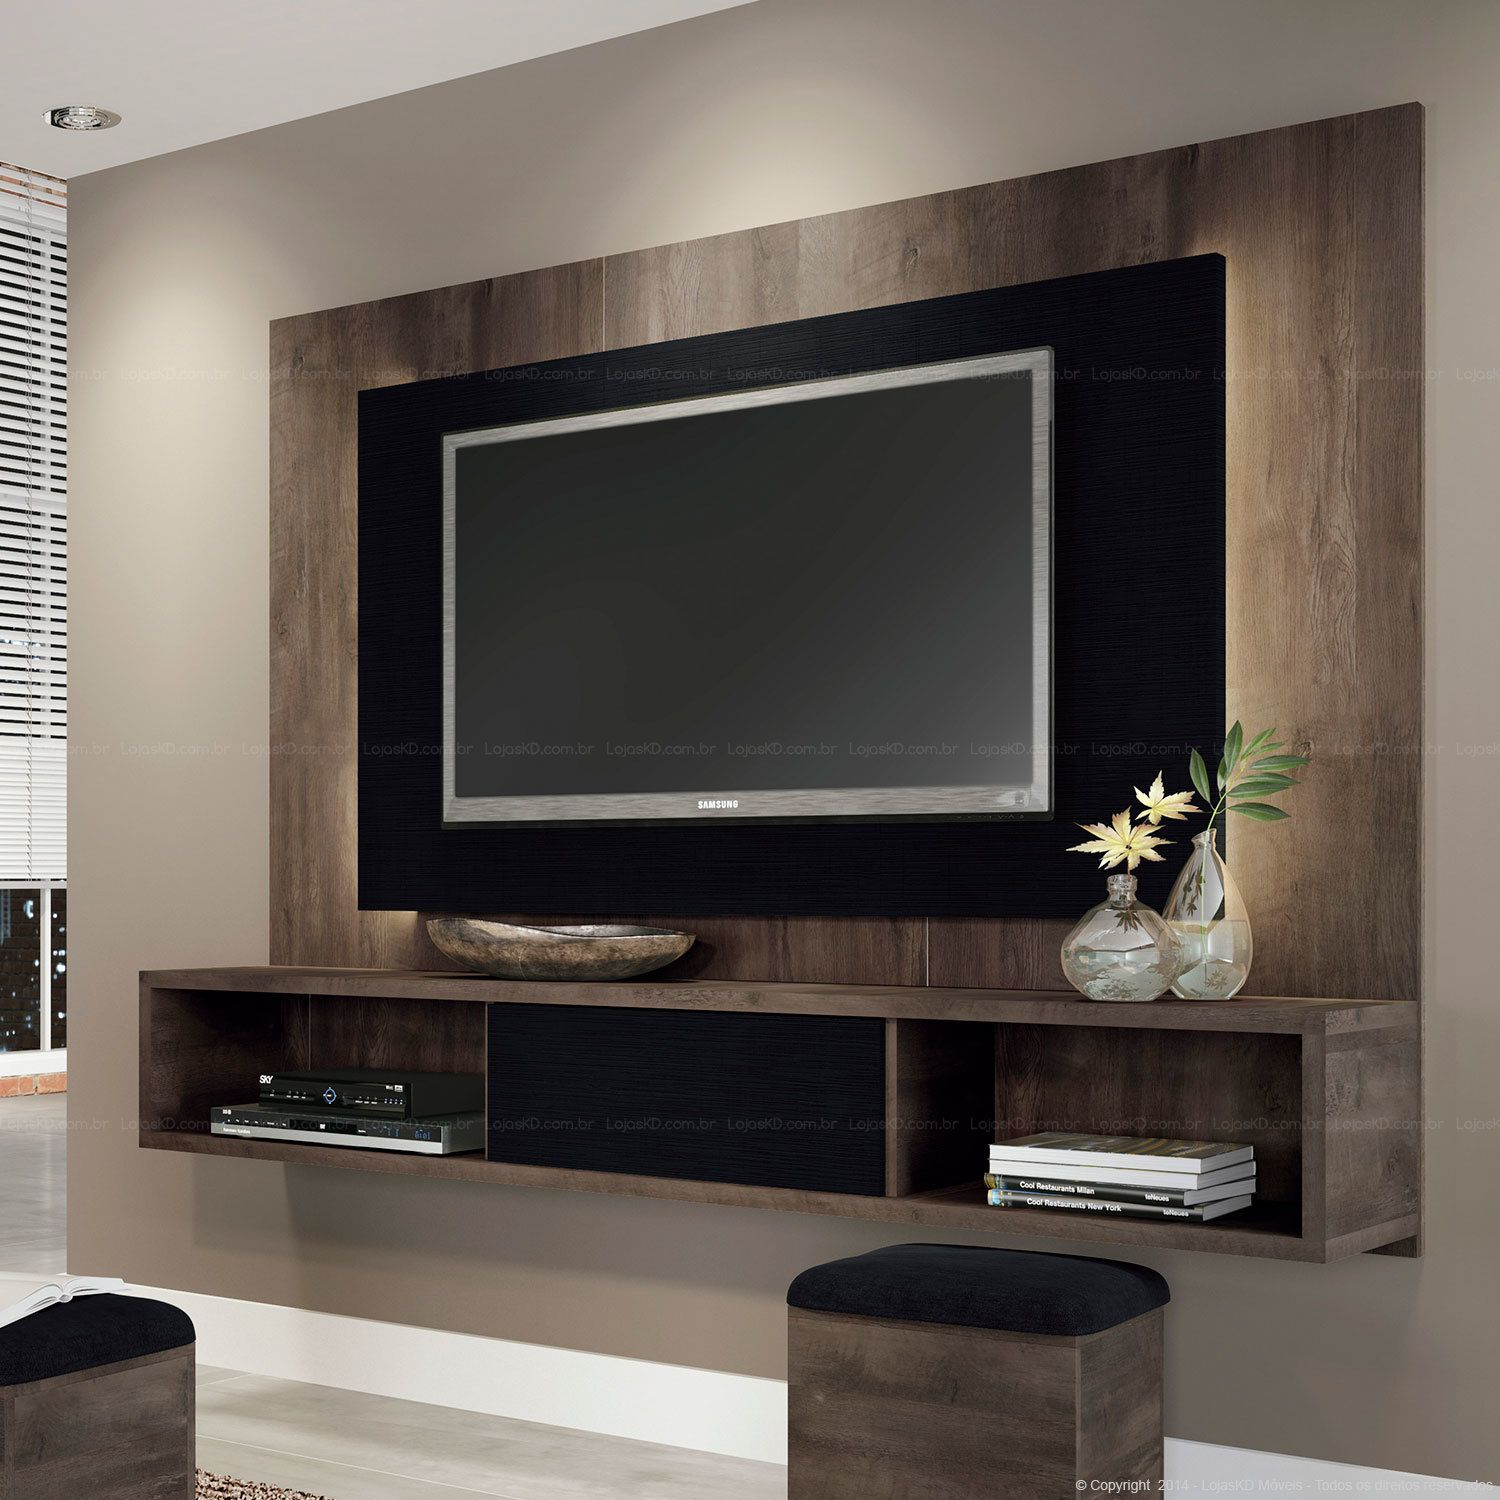 rack suspenso sala pinterest tv panel tvs and cord. Black Bedroom Furniture Sets. Home Design Ideas